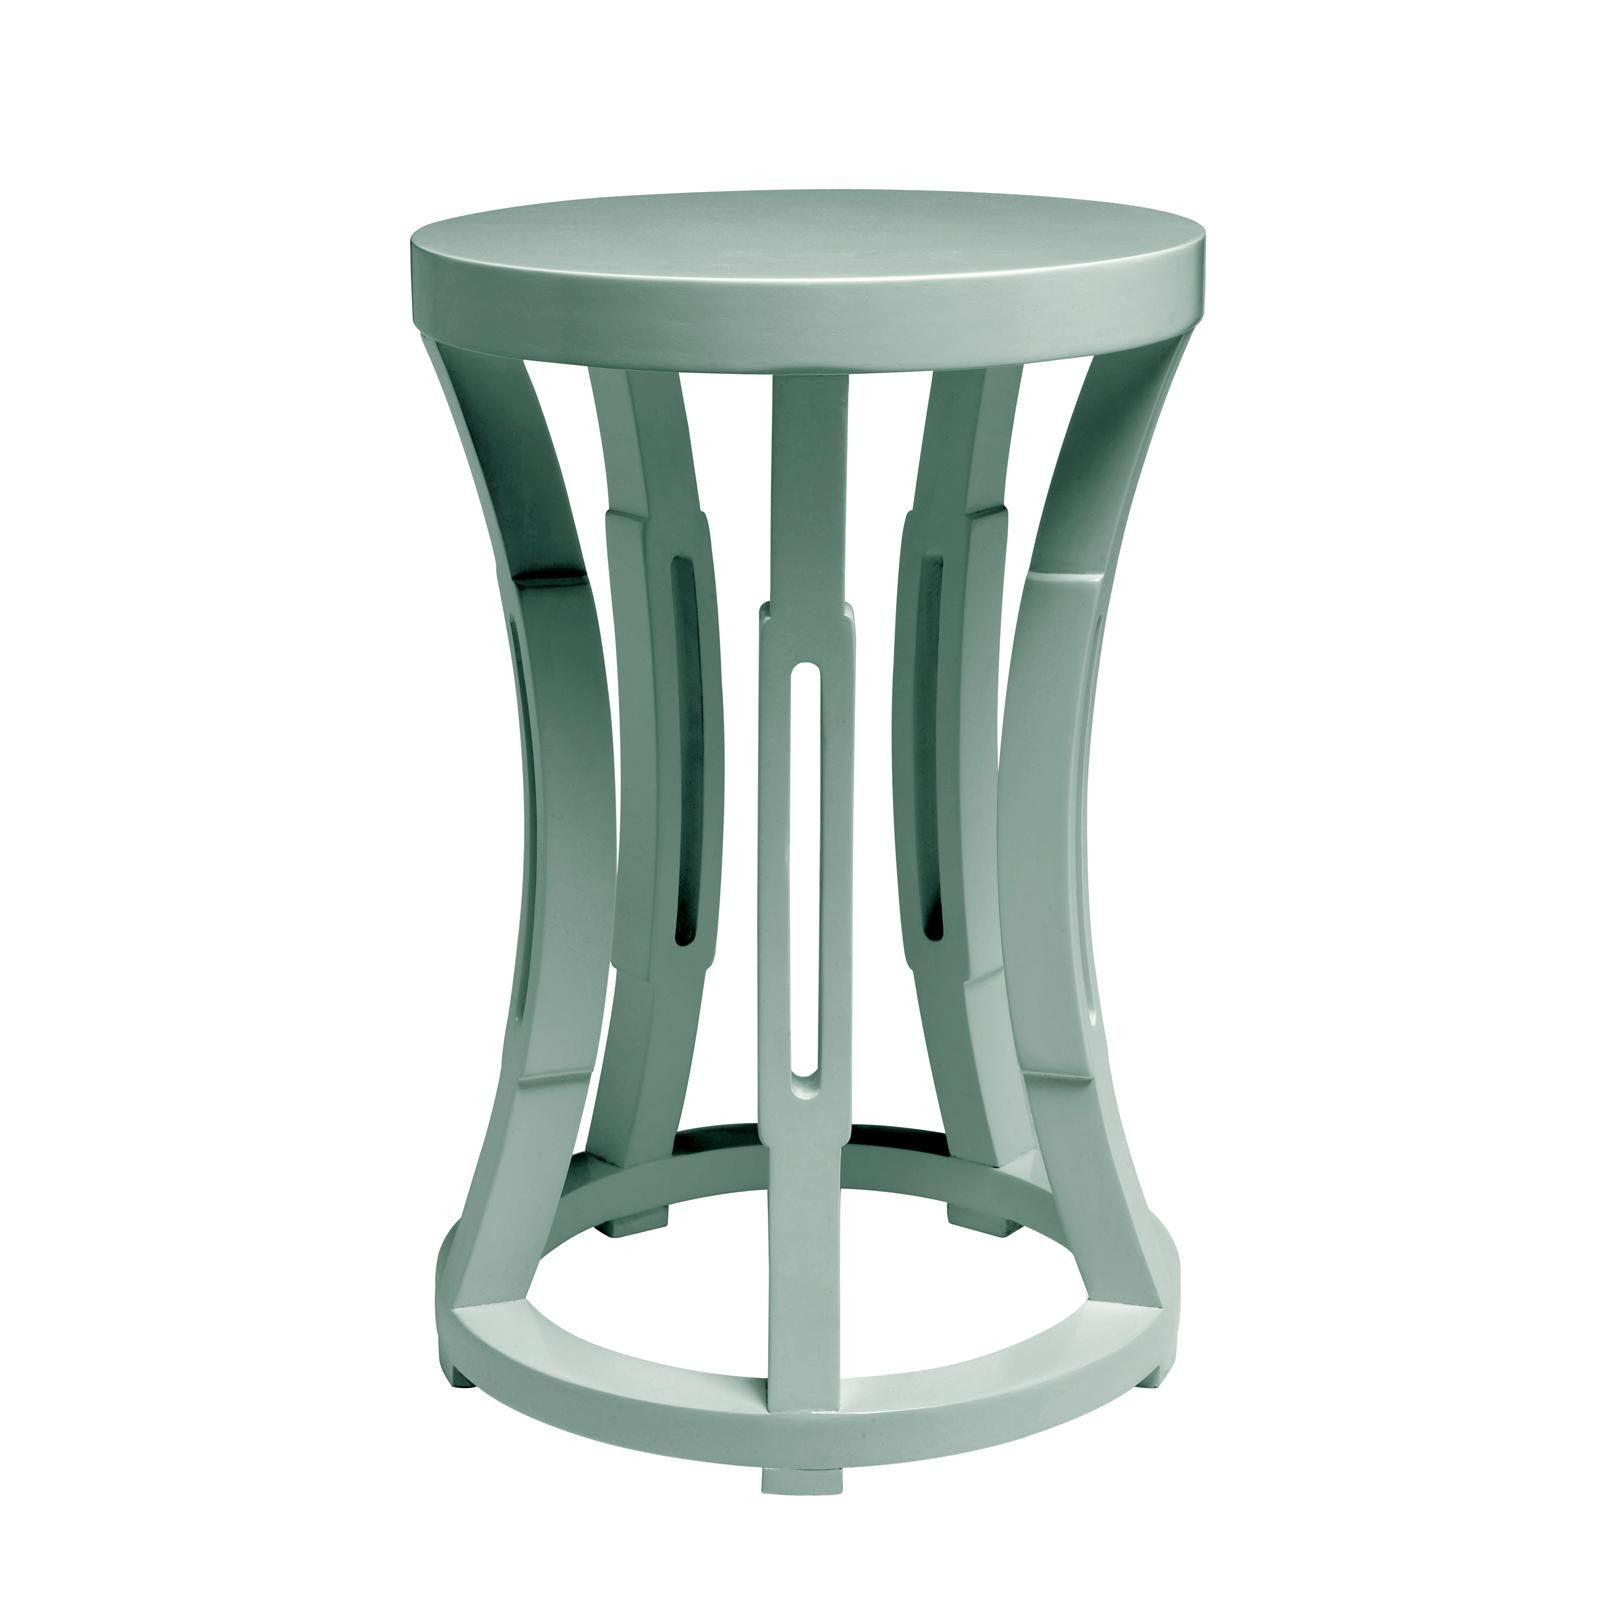 bungalow hourglass stool side table powder blue family room dark accent decorative lamps waterproof cover for garden and chairs pub tables bistro sets chinoiserie lamp metal